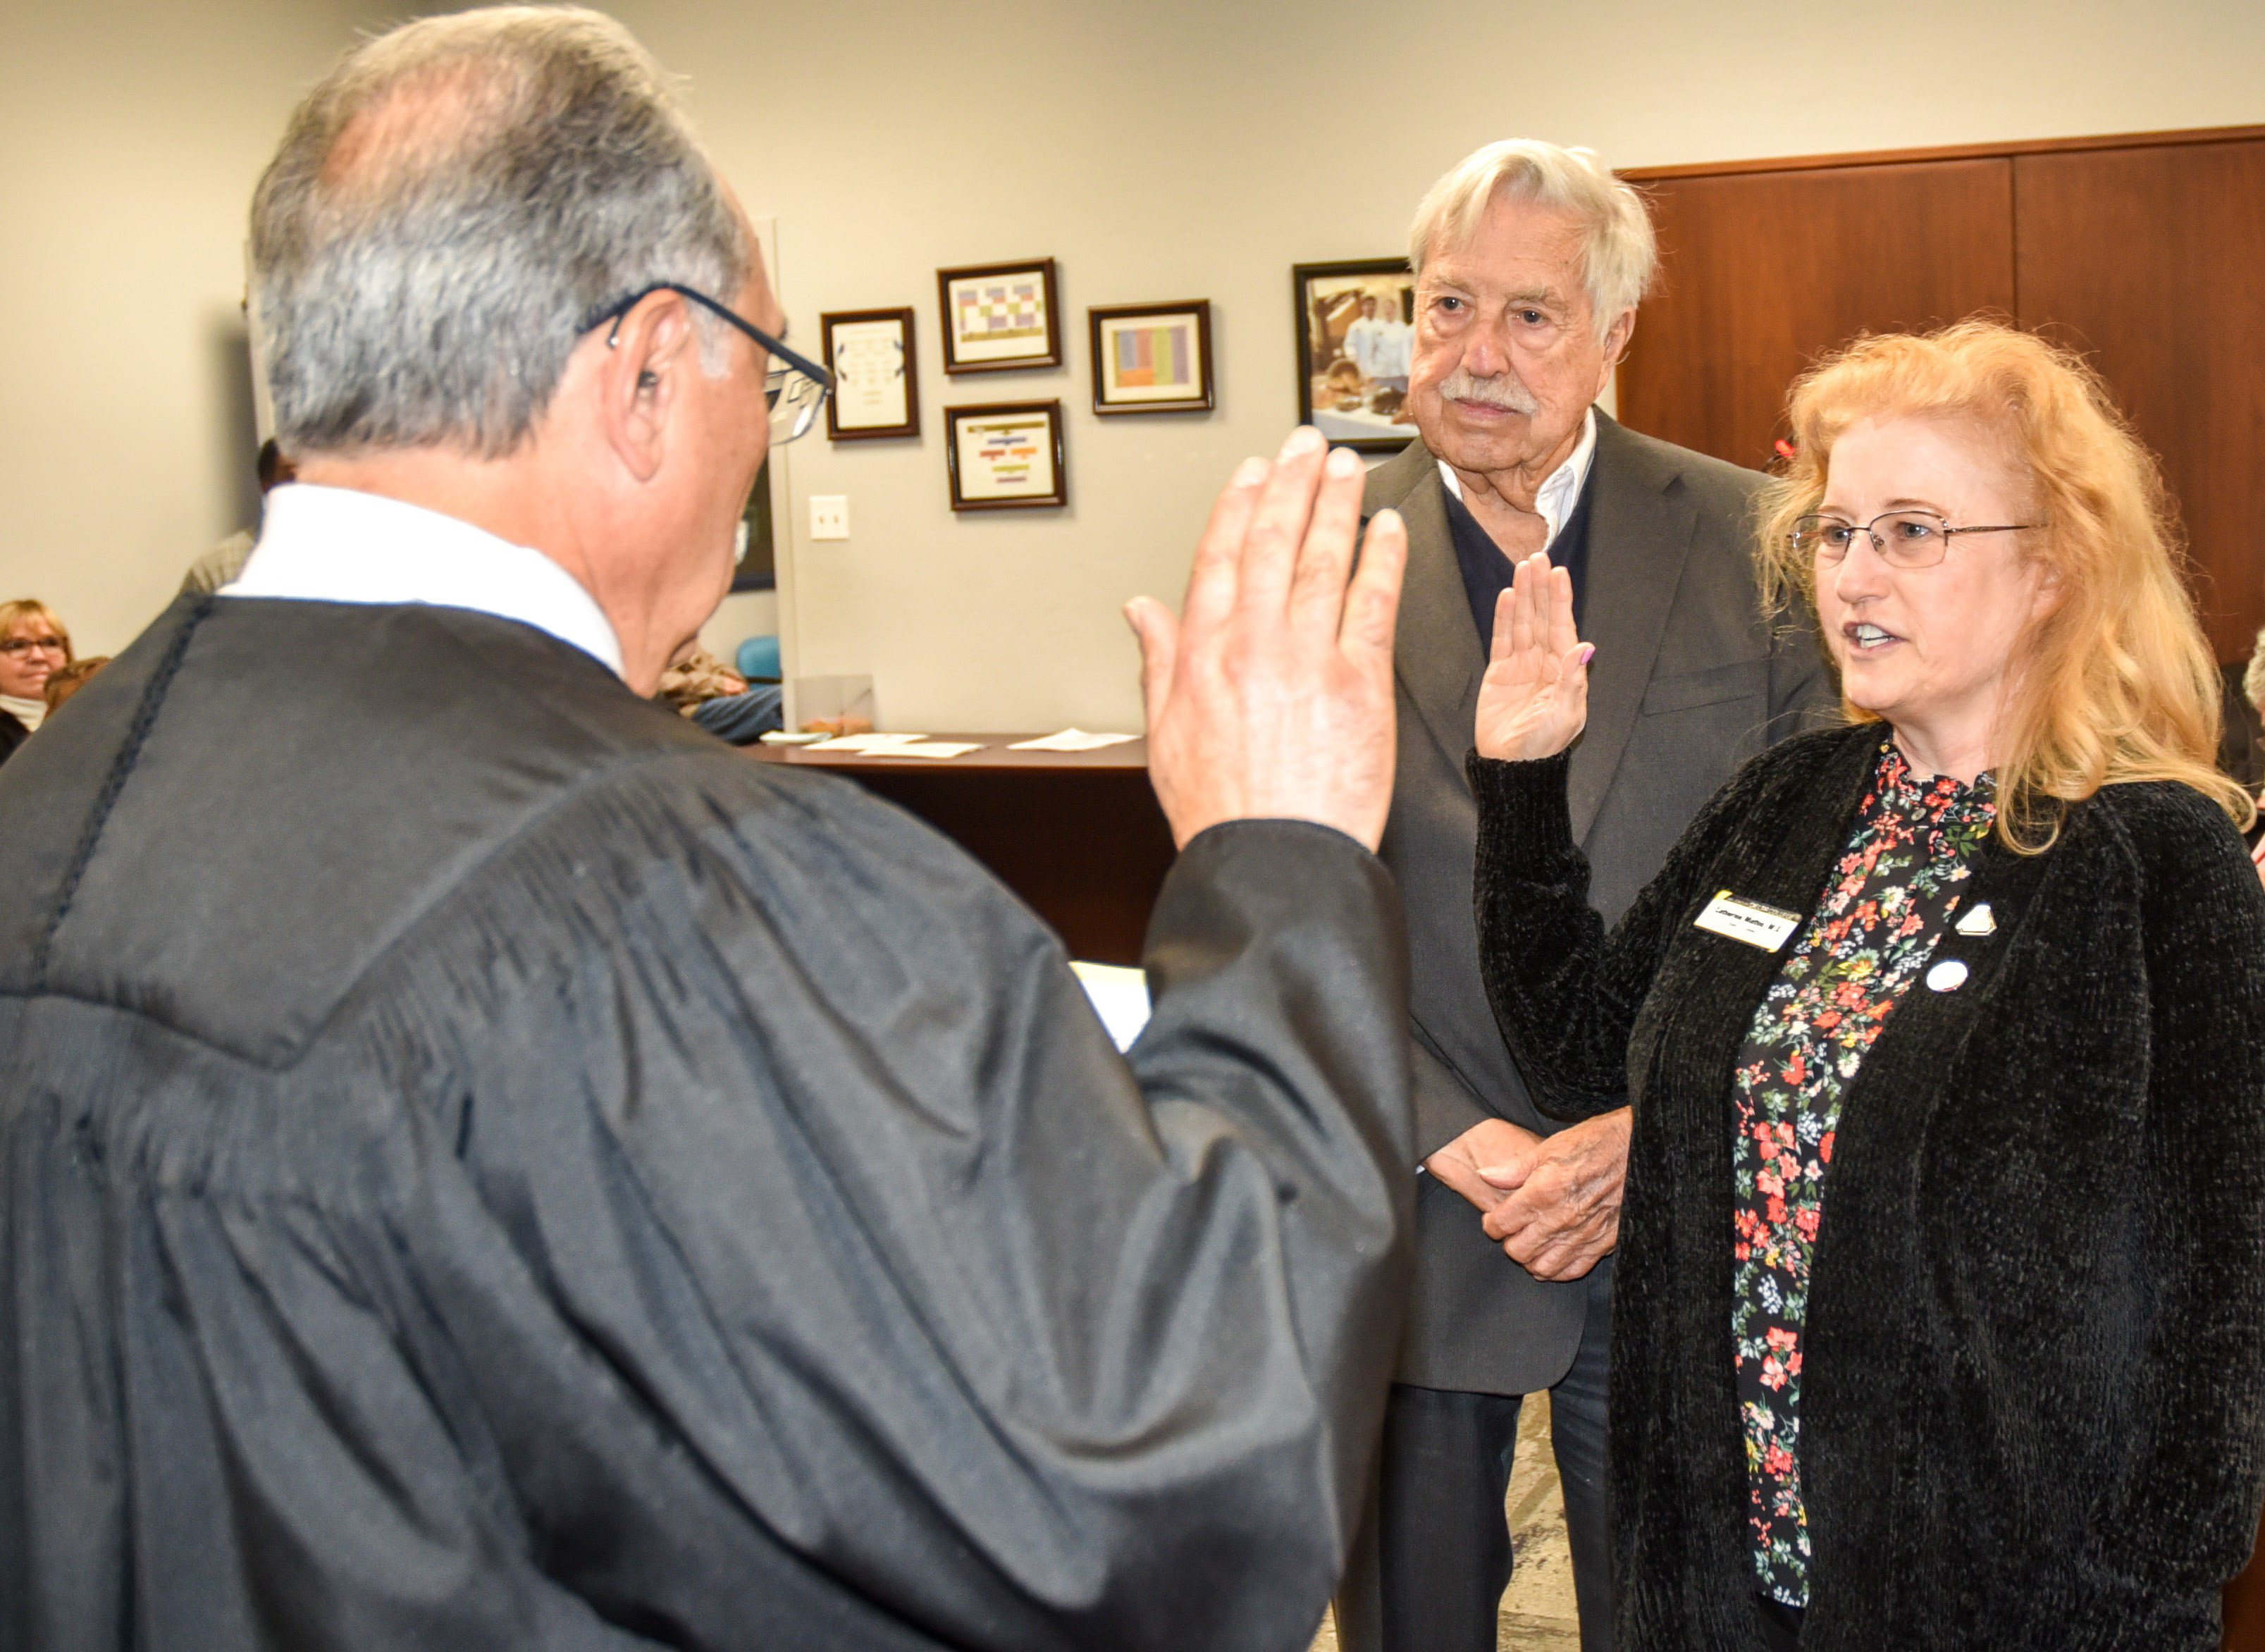 Returning San Joaquin Delta College Trustee Catherine Mathis is sworn in while her husband, Millard Frohock, watches.